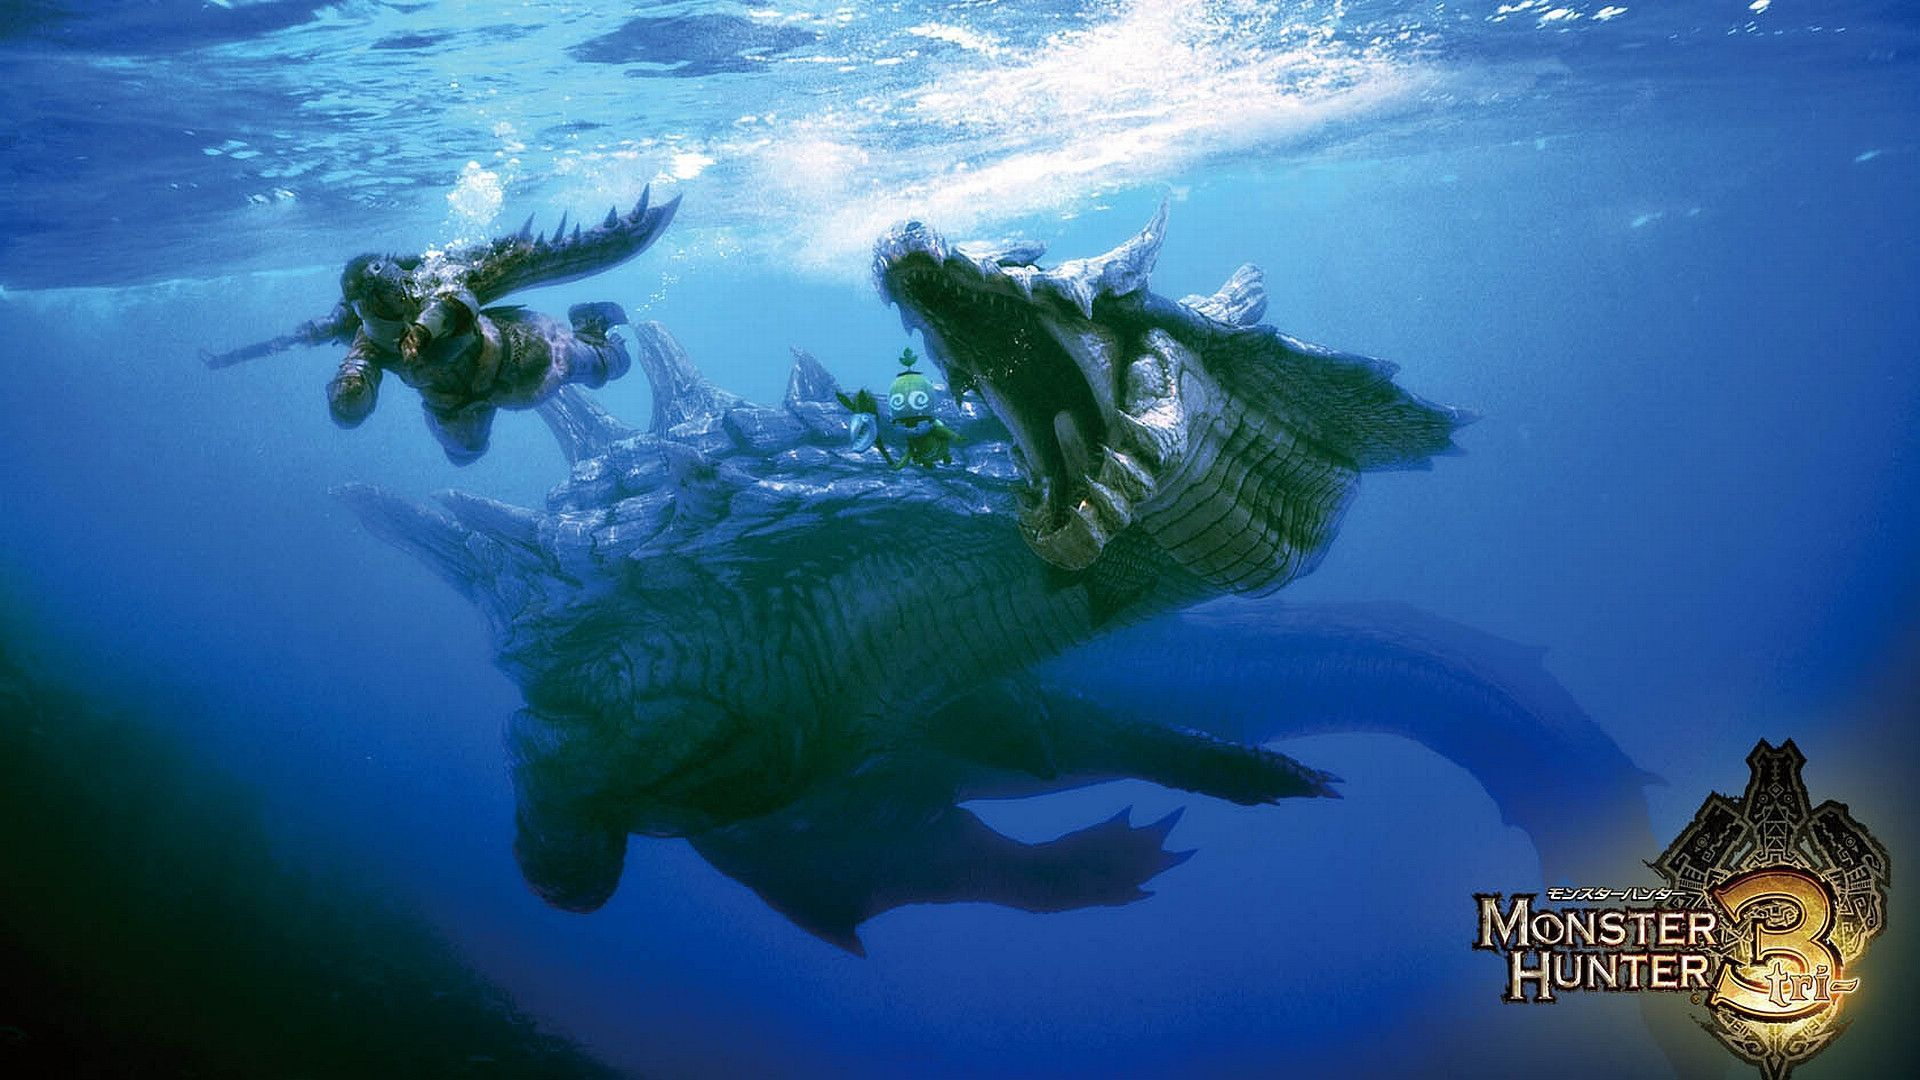 Monster Hunter Freedom Hd Wallpapers Backgrounds Wallpaper 1920x1080